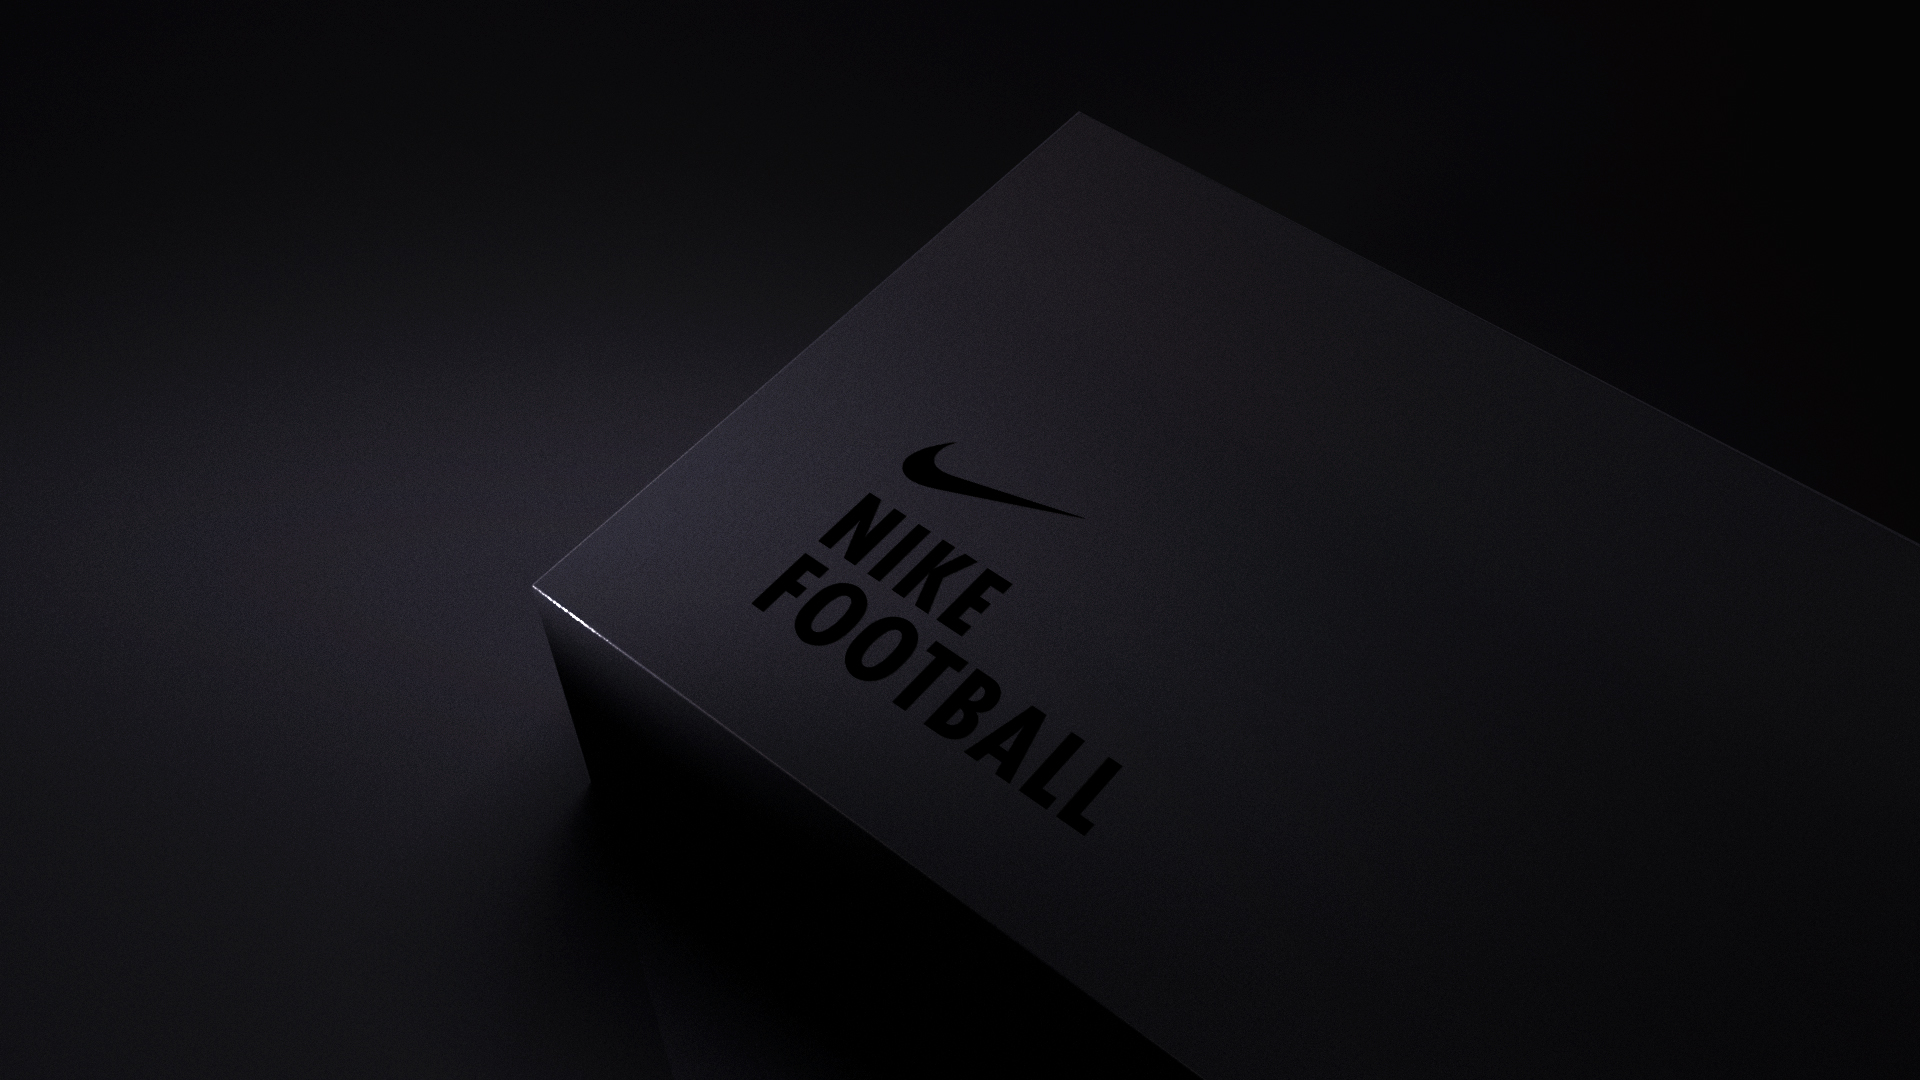 Nike's Visual Language Taking Service and the Game to a Completely New Level